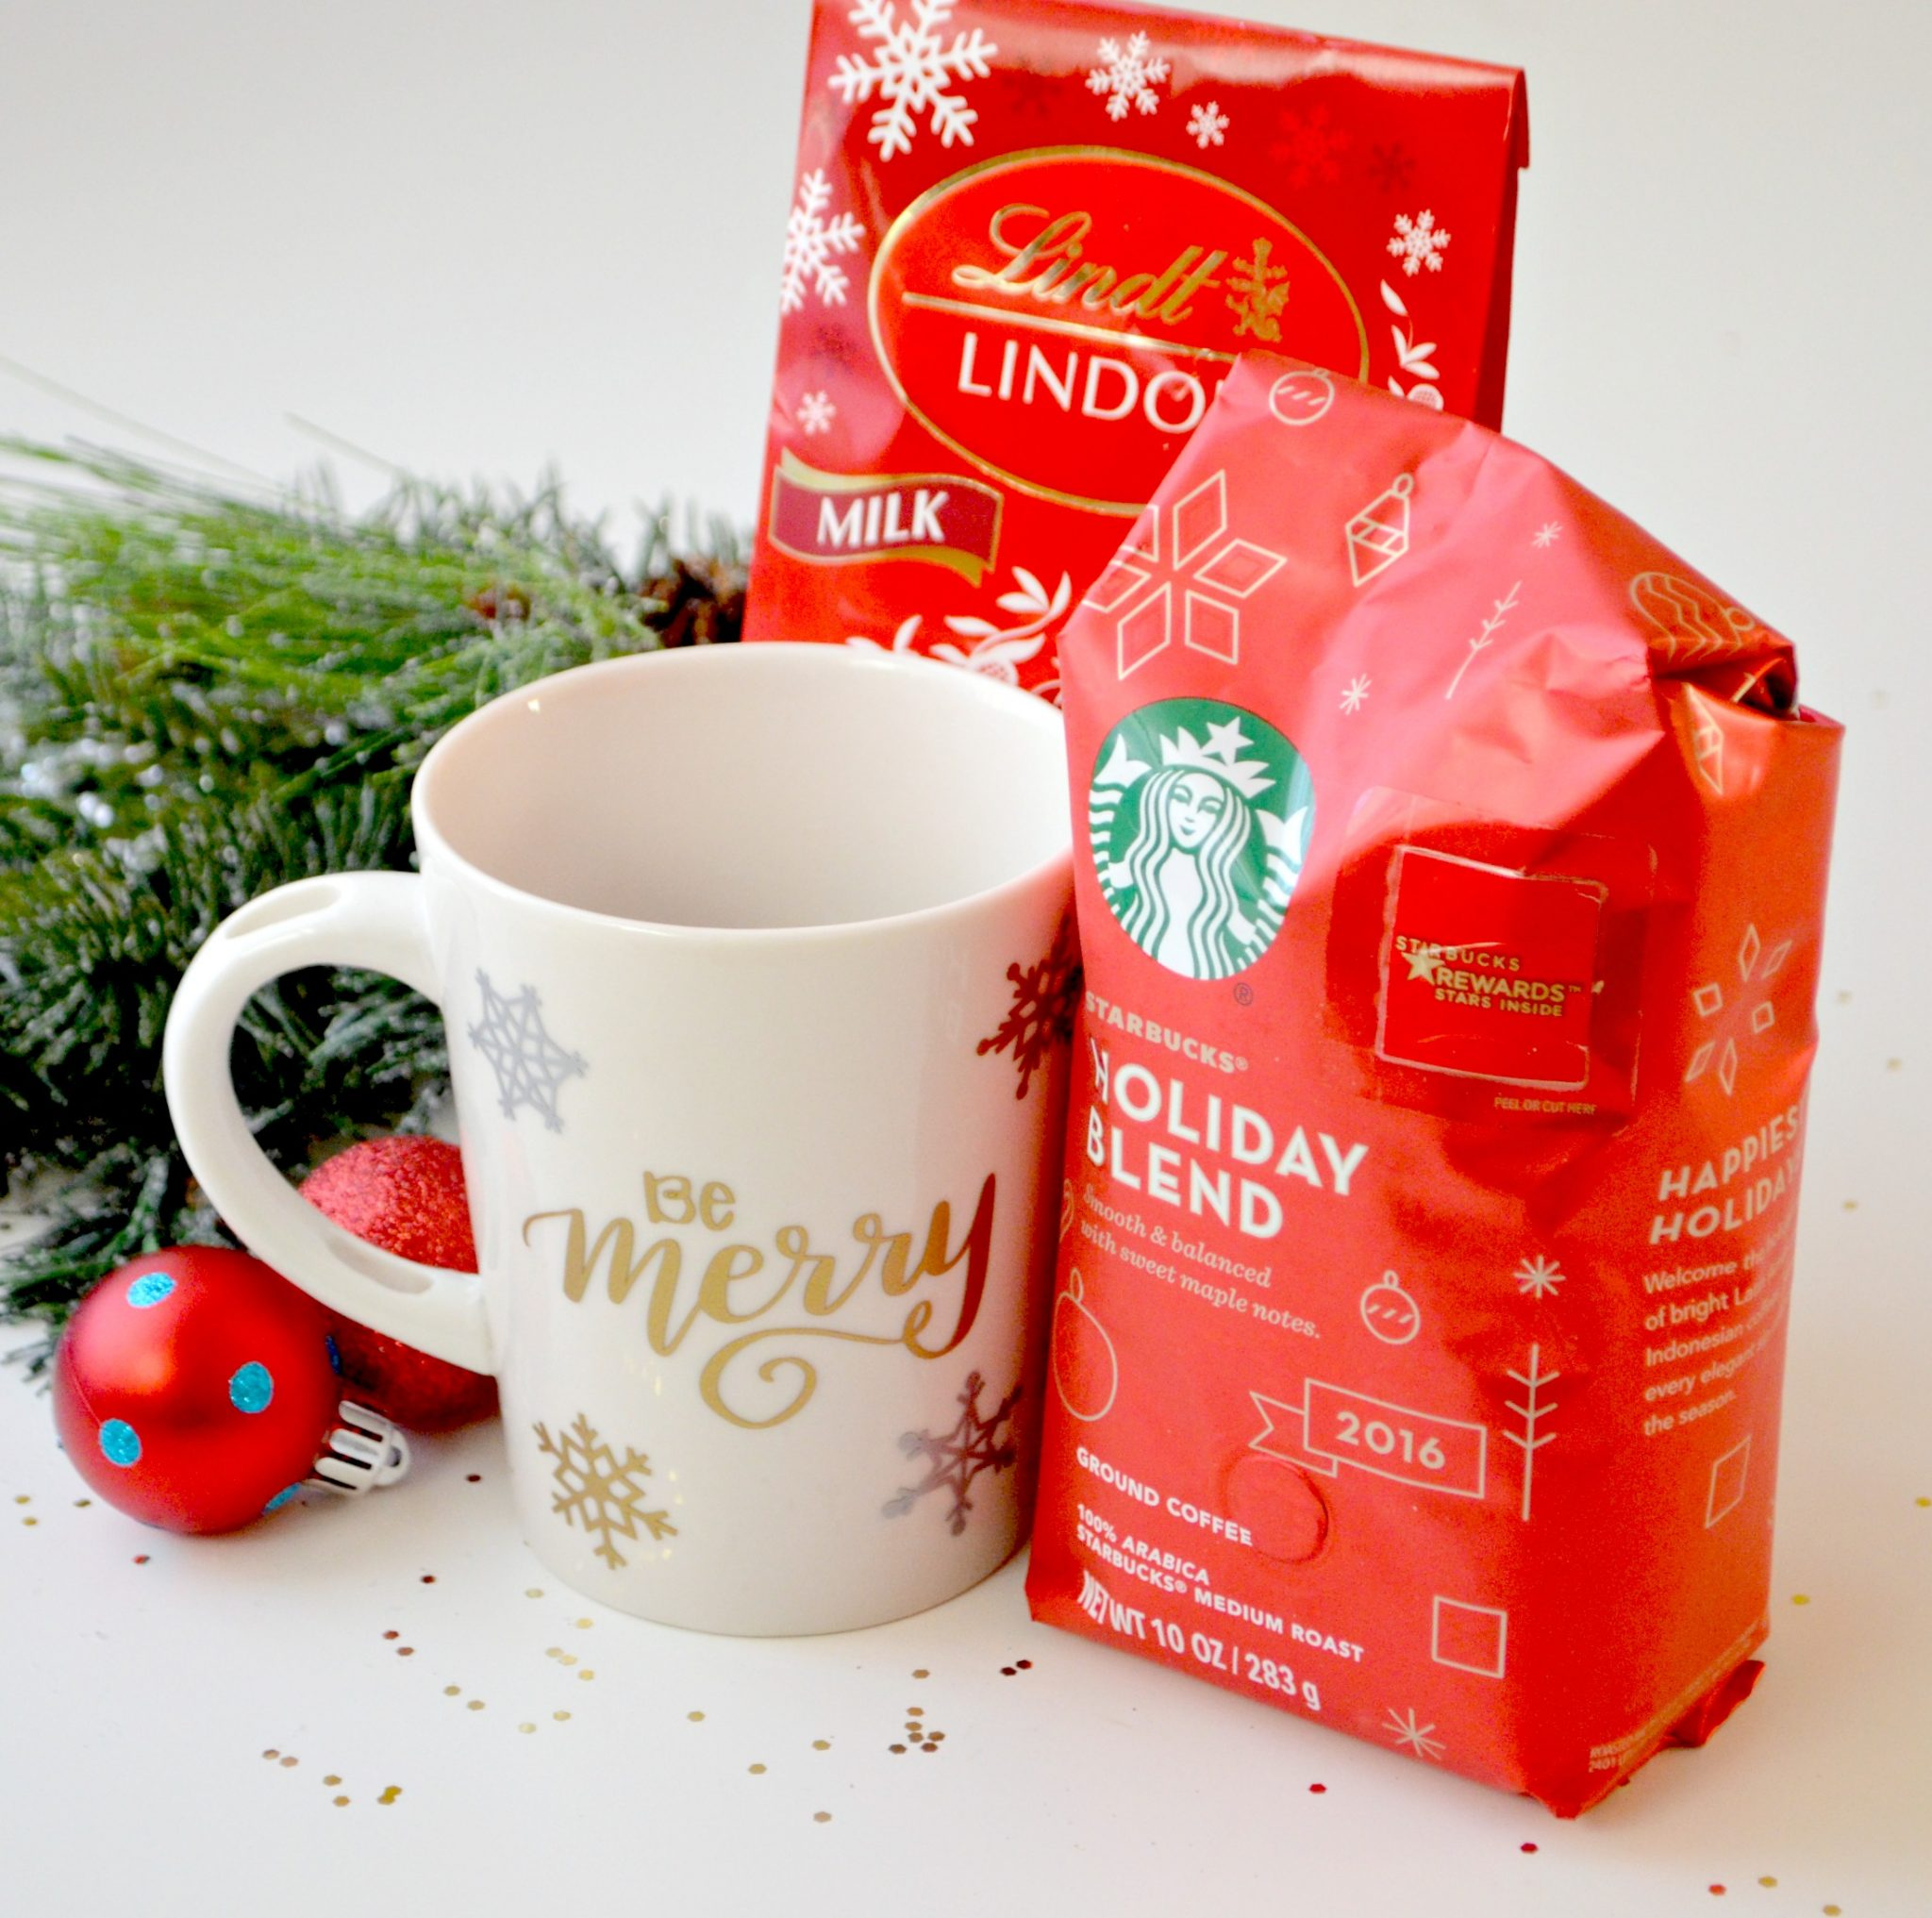 Give Of Chocolate Starbucks The With Gift Coffee Amy And Lindt QrdxBCoWe